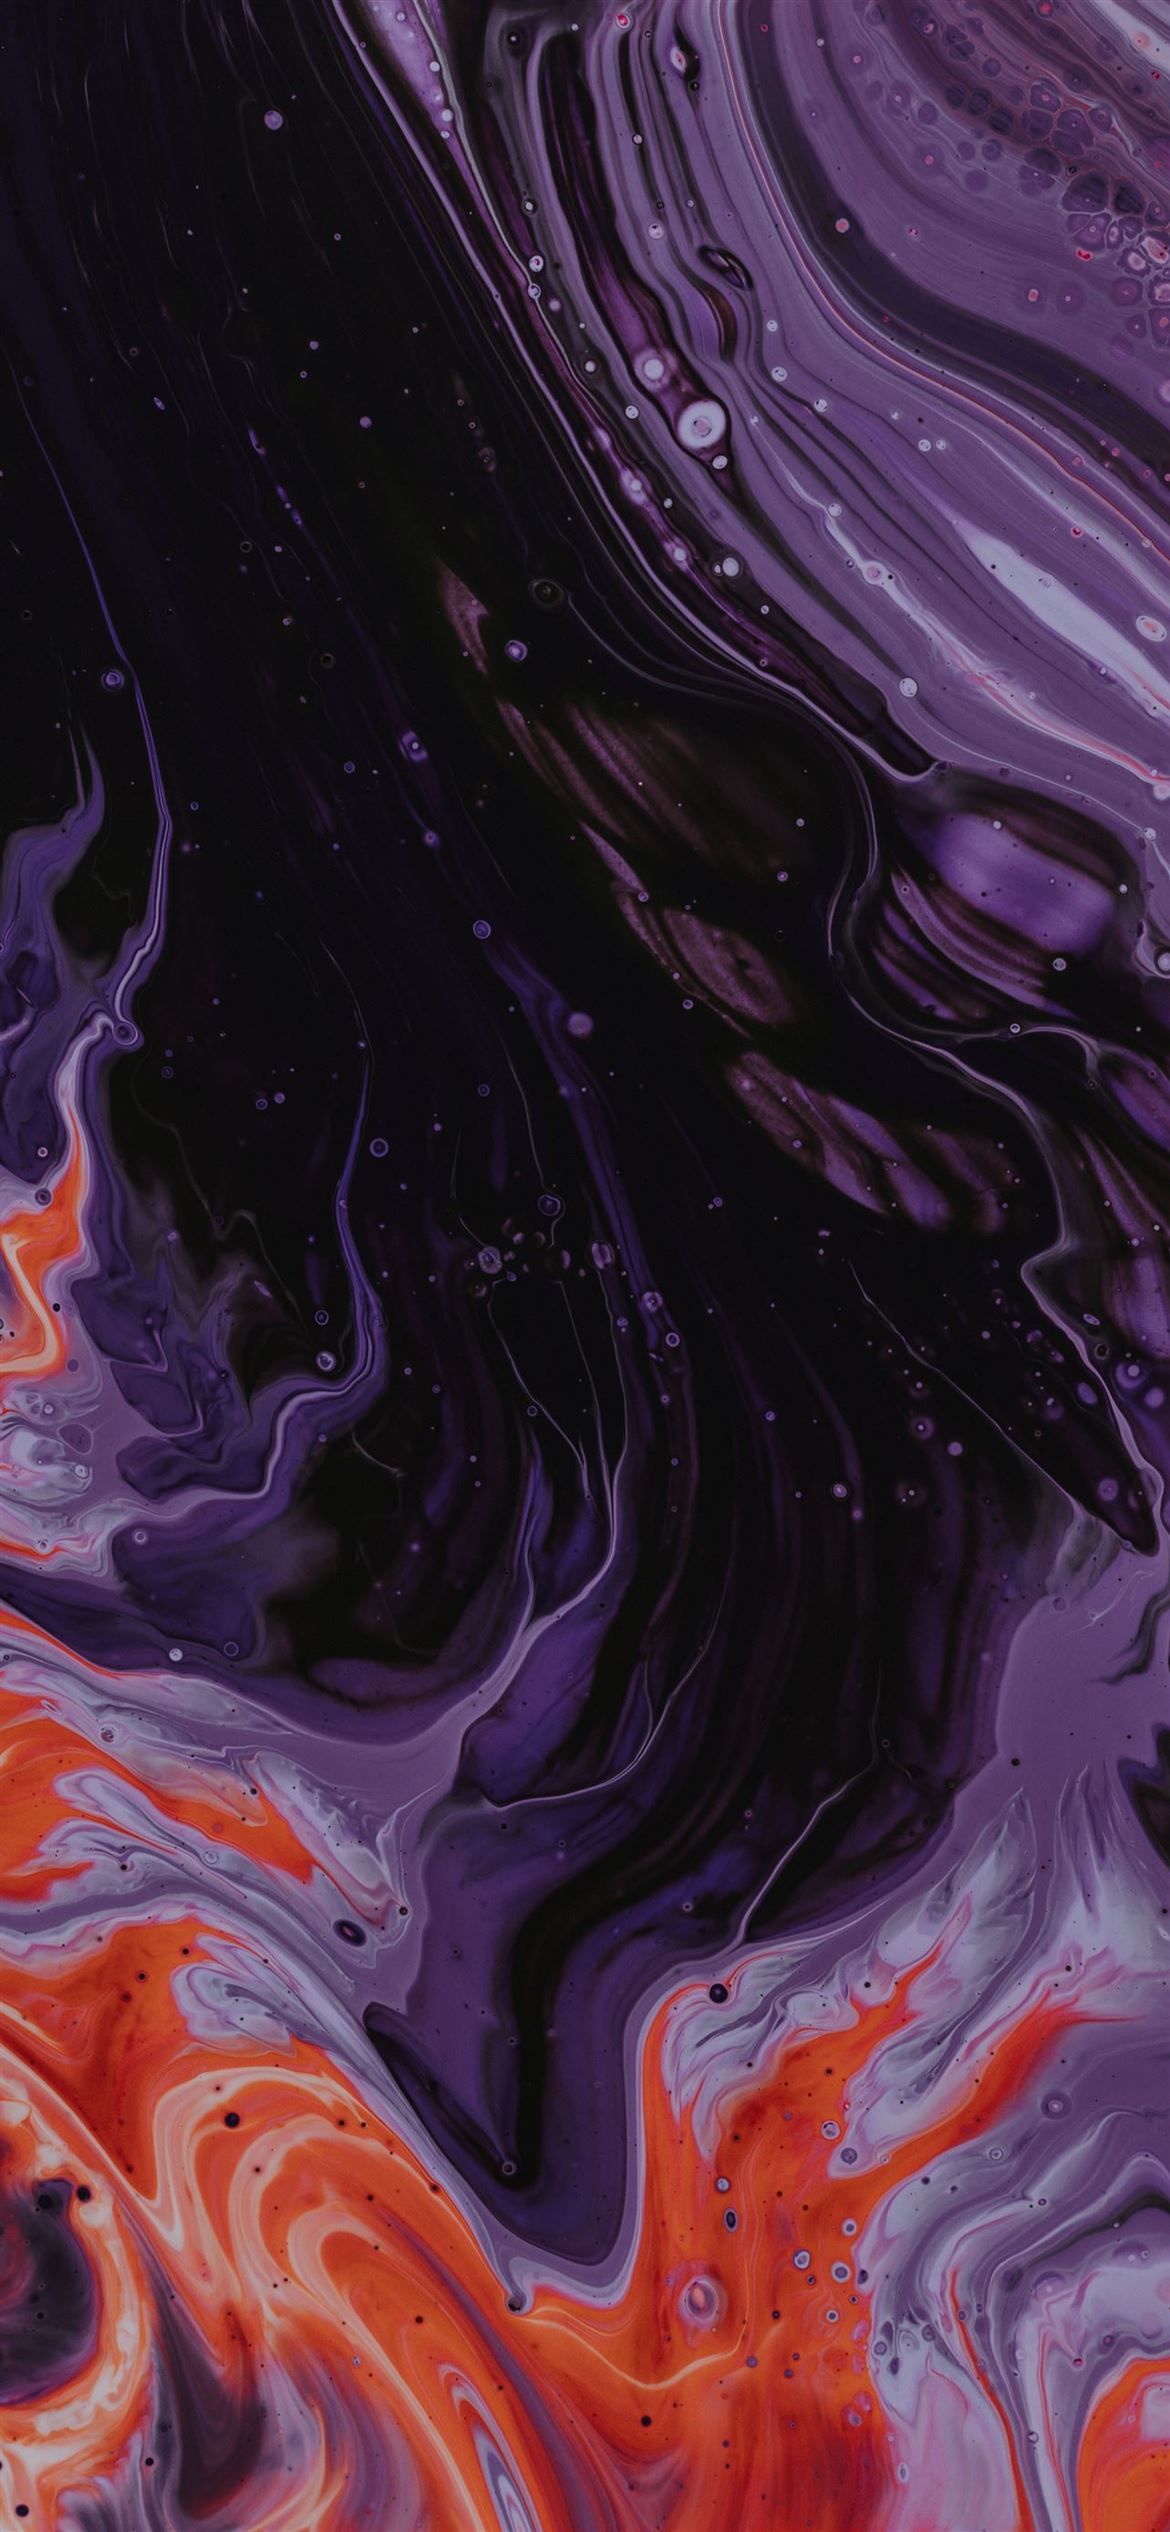 purple black and orange abstract paintin iPhone 12 Wallpapers 1170x2532